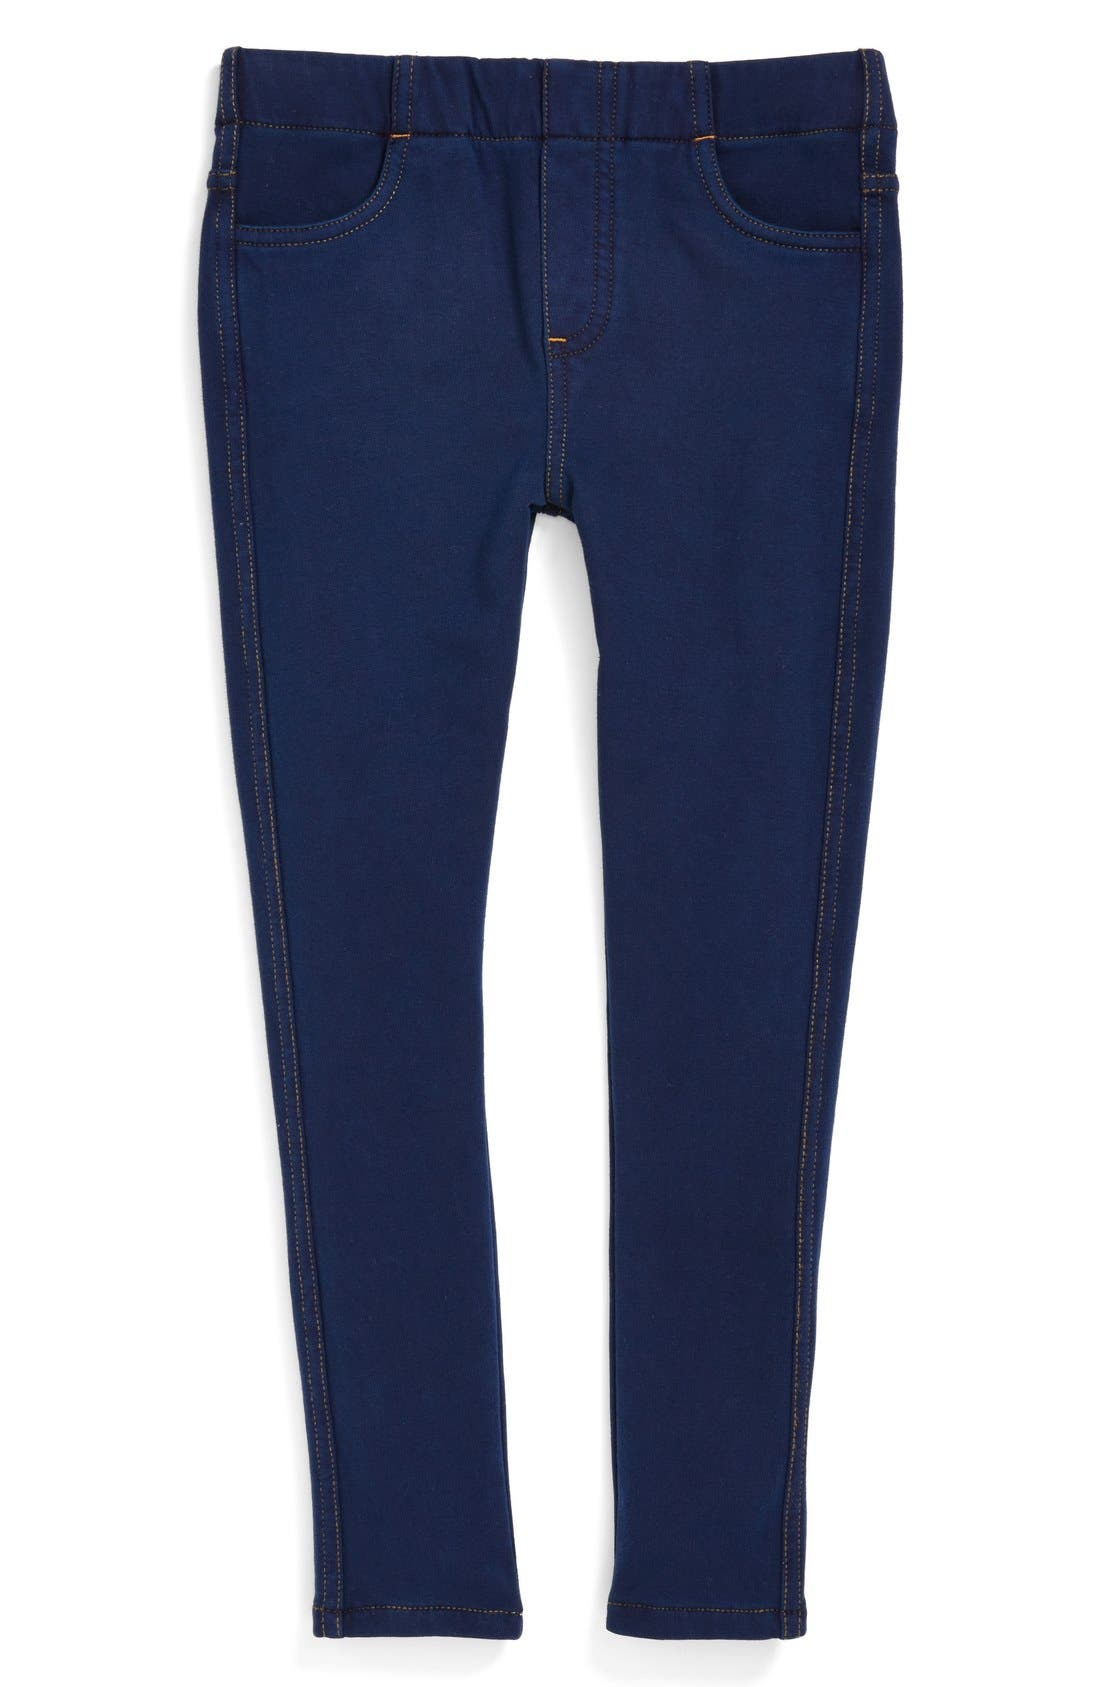 Main Image - Tucker + Tate 'Sadie' Denim Jeggings (Toddler Girls)